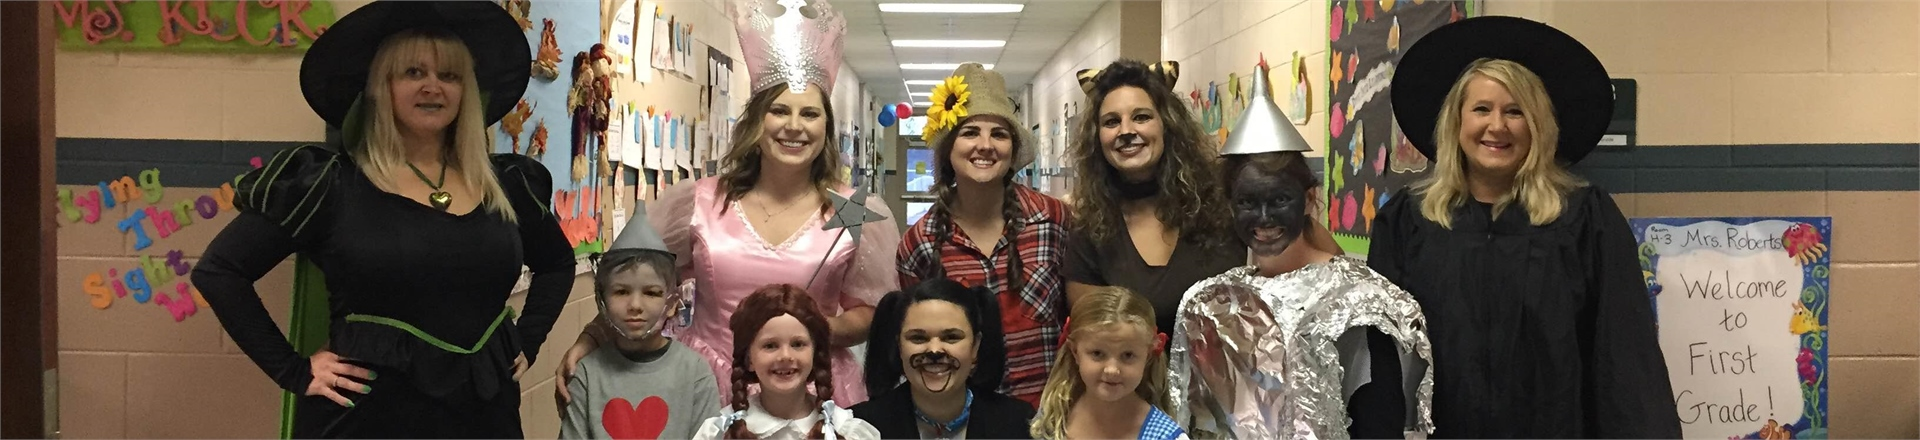 Fuzzy Bear hallway turned into a scene from the Wizard of Oz - Character Day 2015